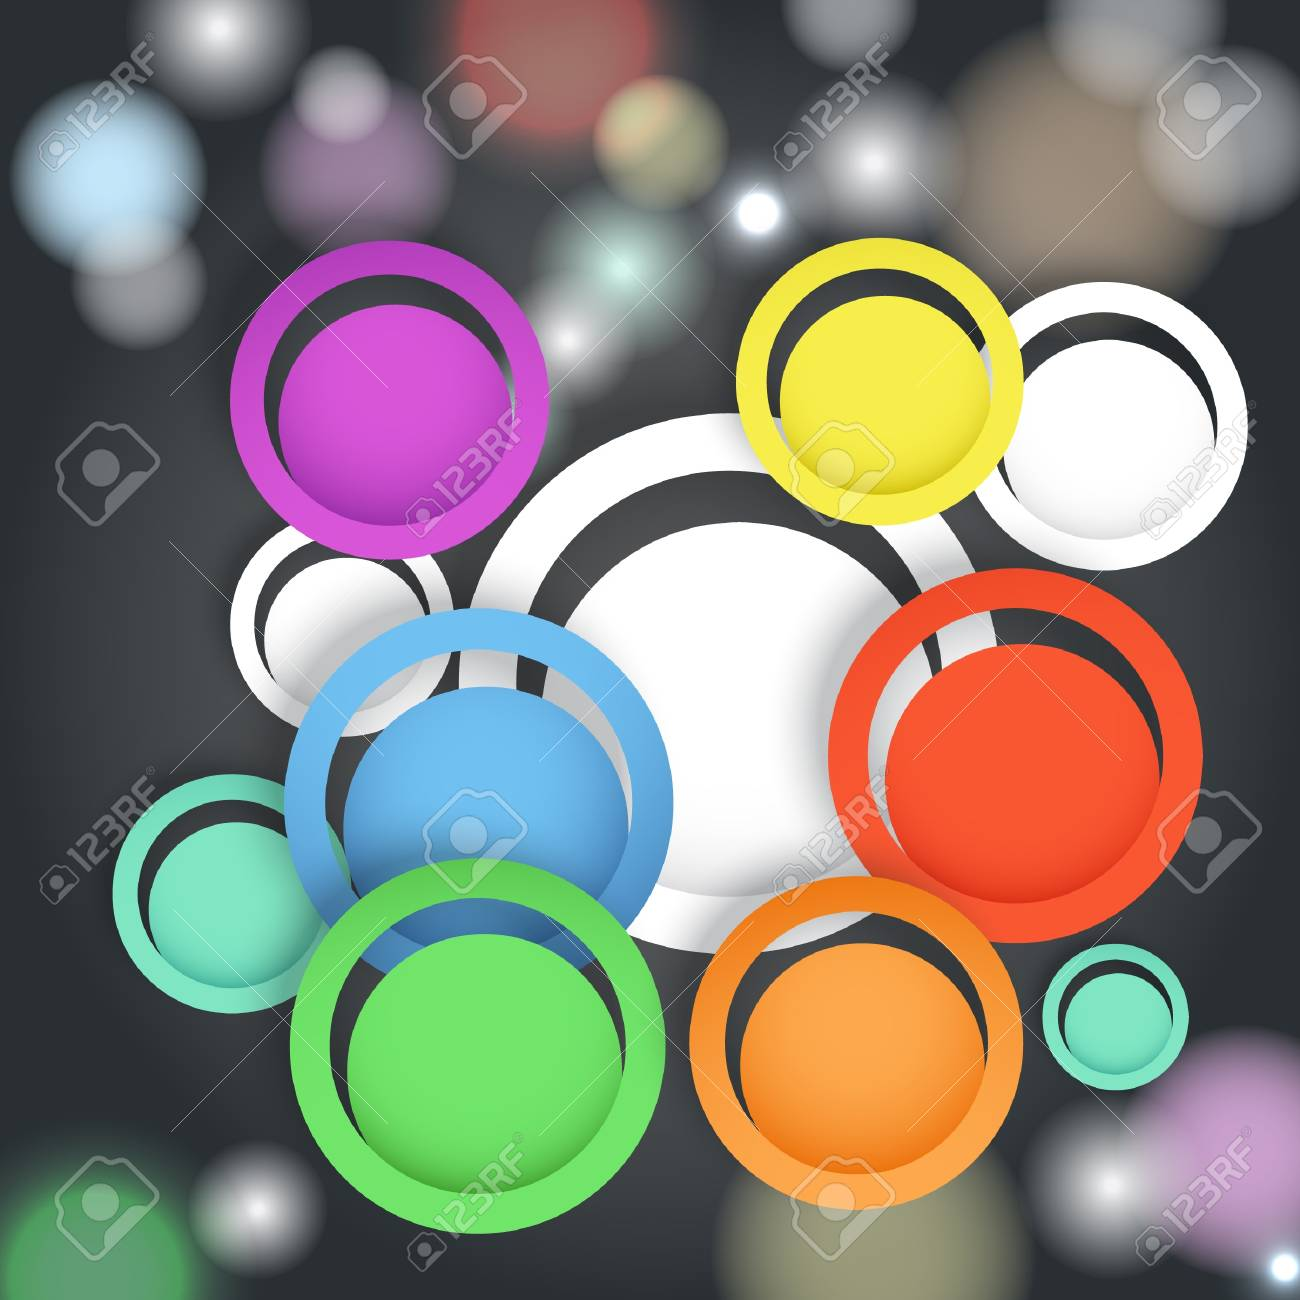 Abstract background with color circles Stock Vector - 17891475